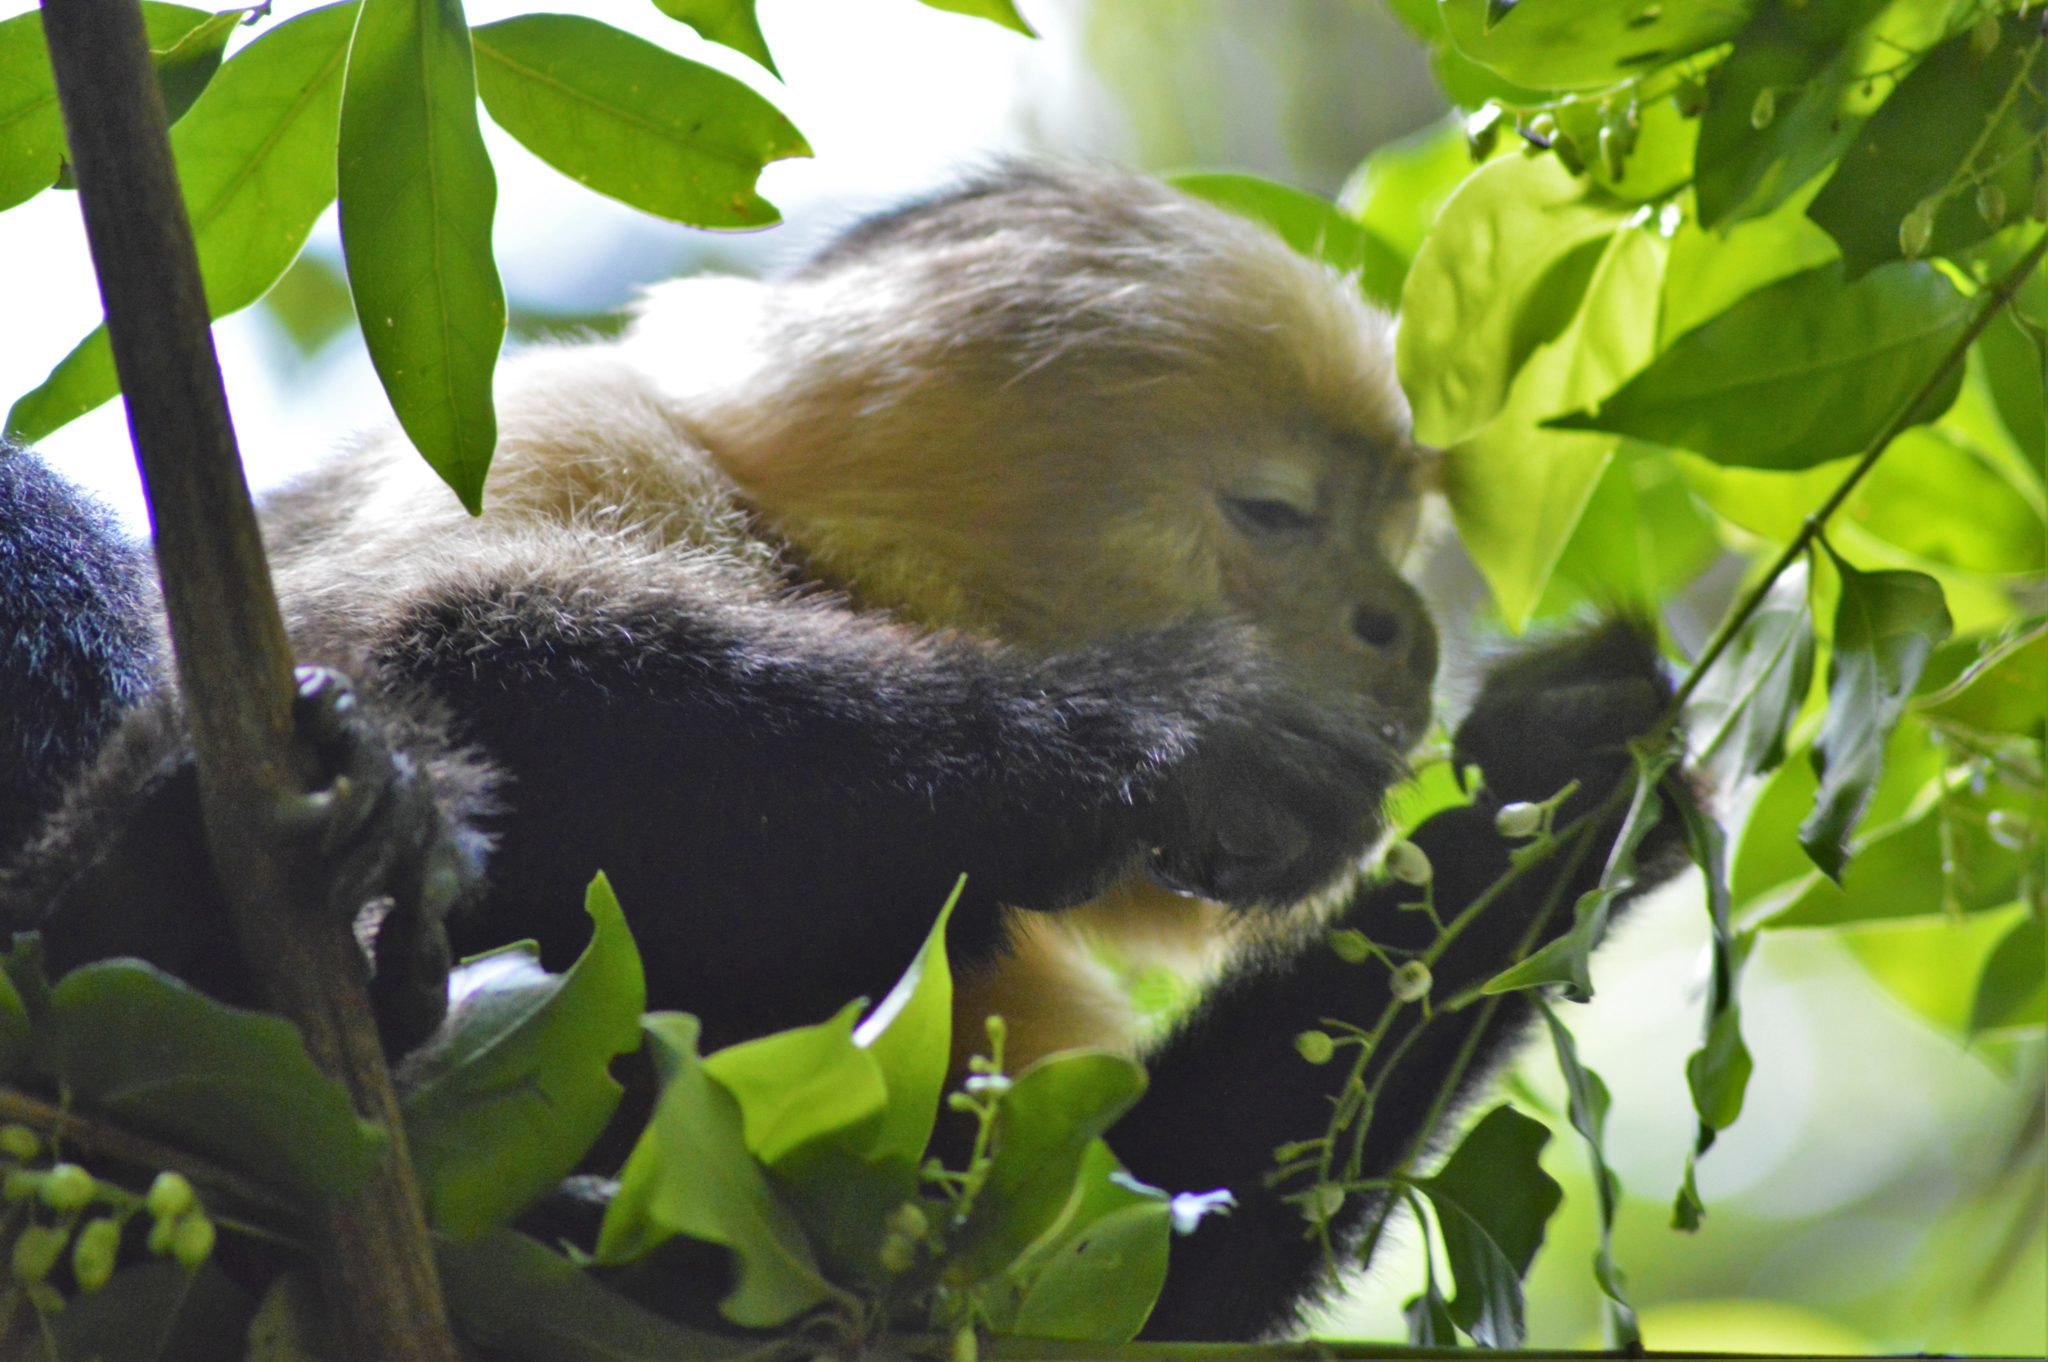 White Faced Monkey in a tree eating in Costa Rica